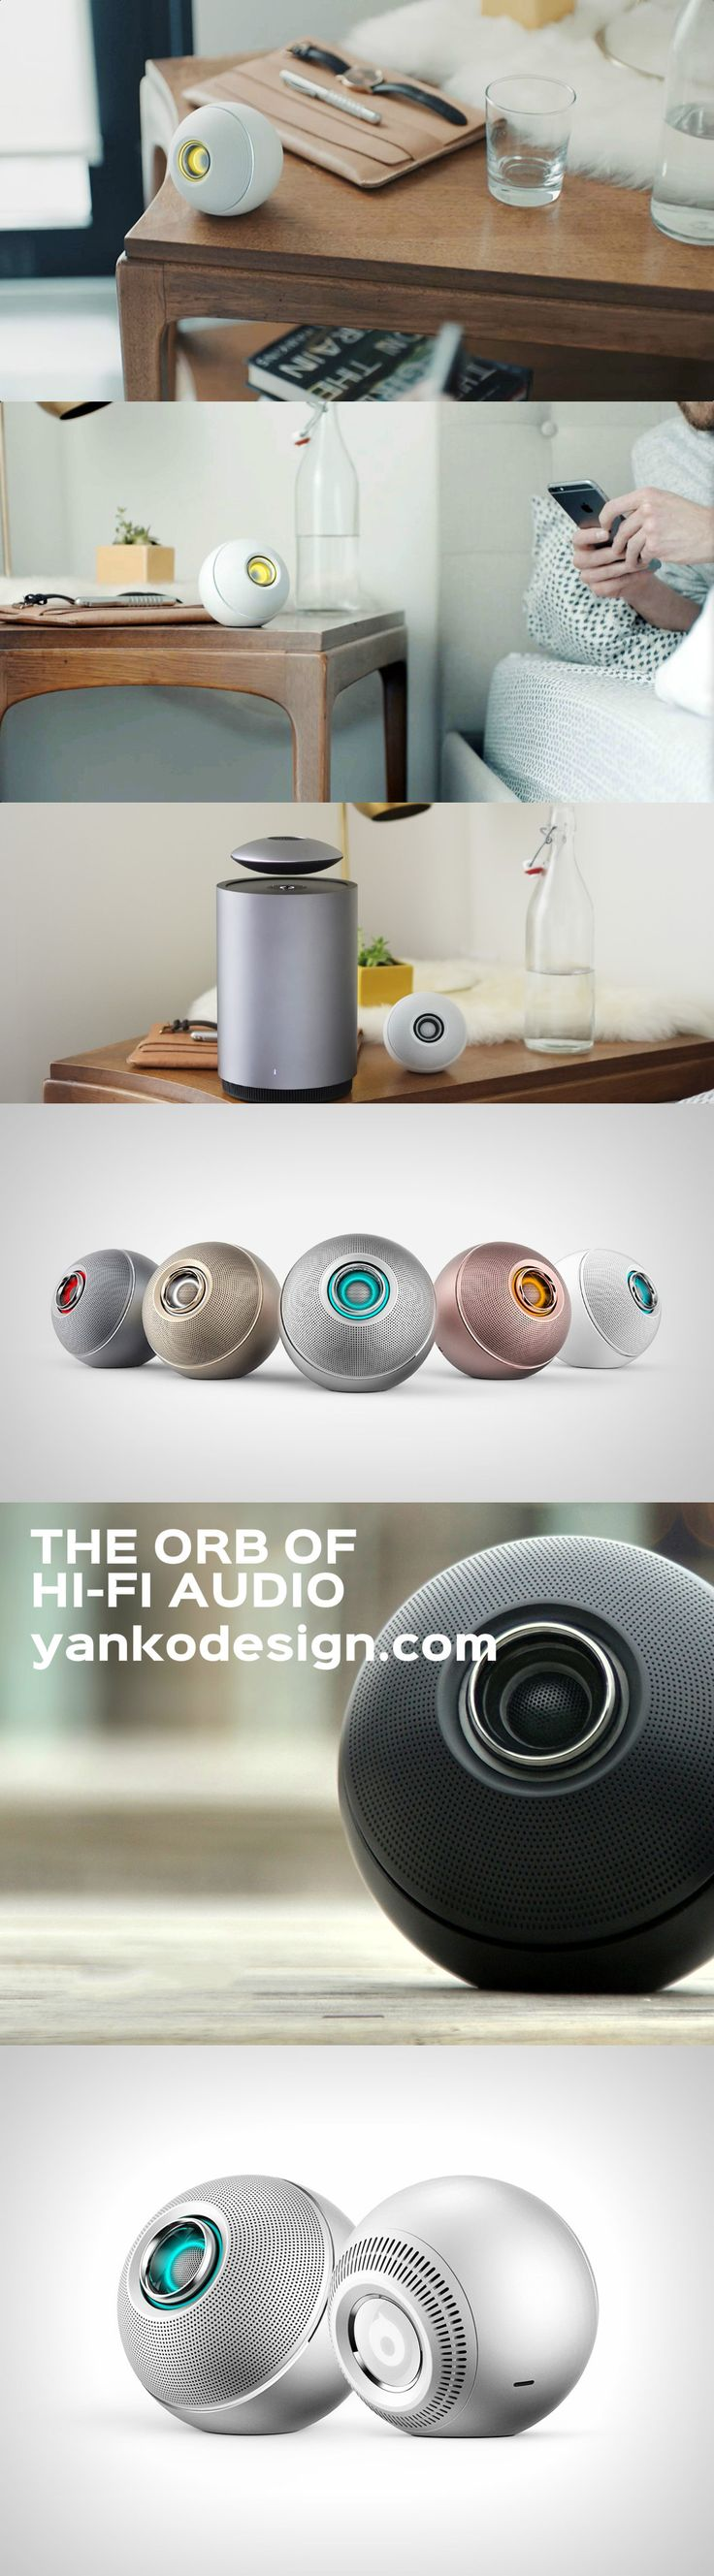 Not only does it pack a punch in the sound department, it also can be paired with more of its kind to create a network of audio devices that can stream from a single source. www.yankodesign.com